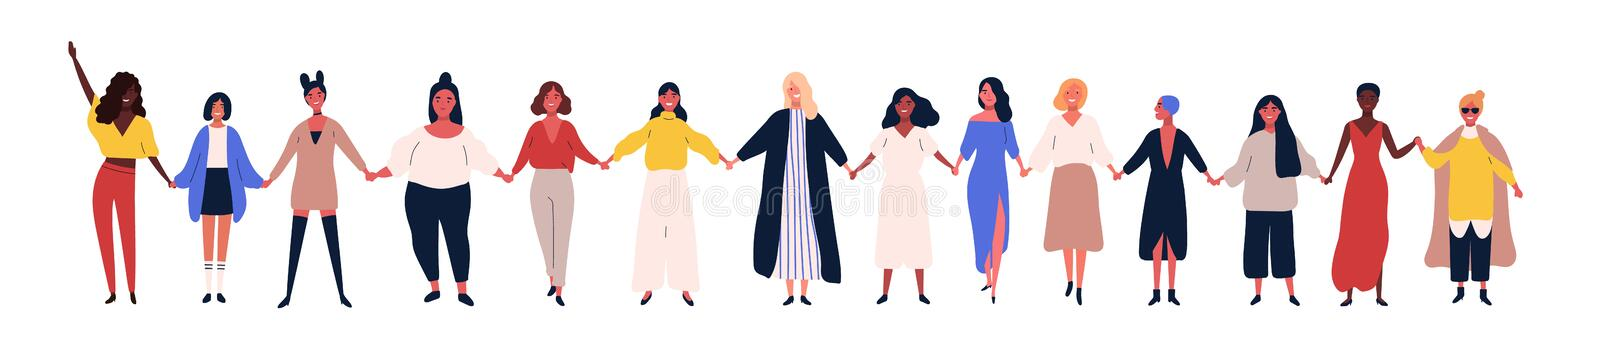 Happy women or girls standing together and holding hands. Group of female friends, union of feminists, sisterhood. Flat stock illustration